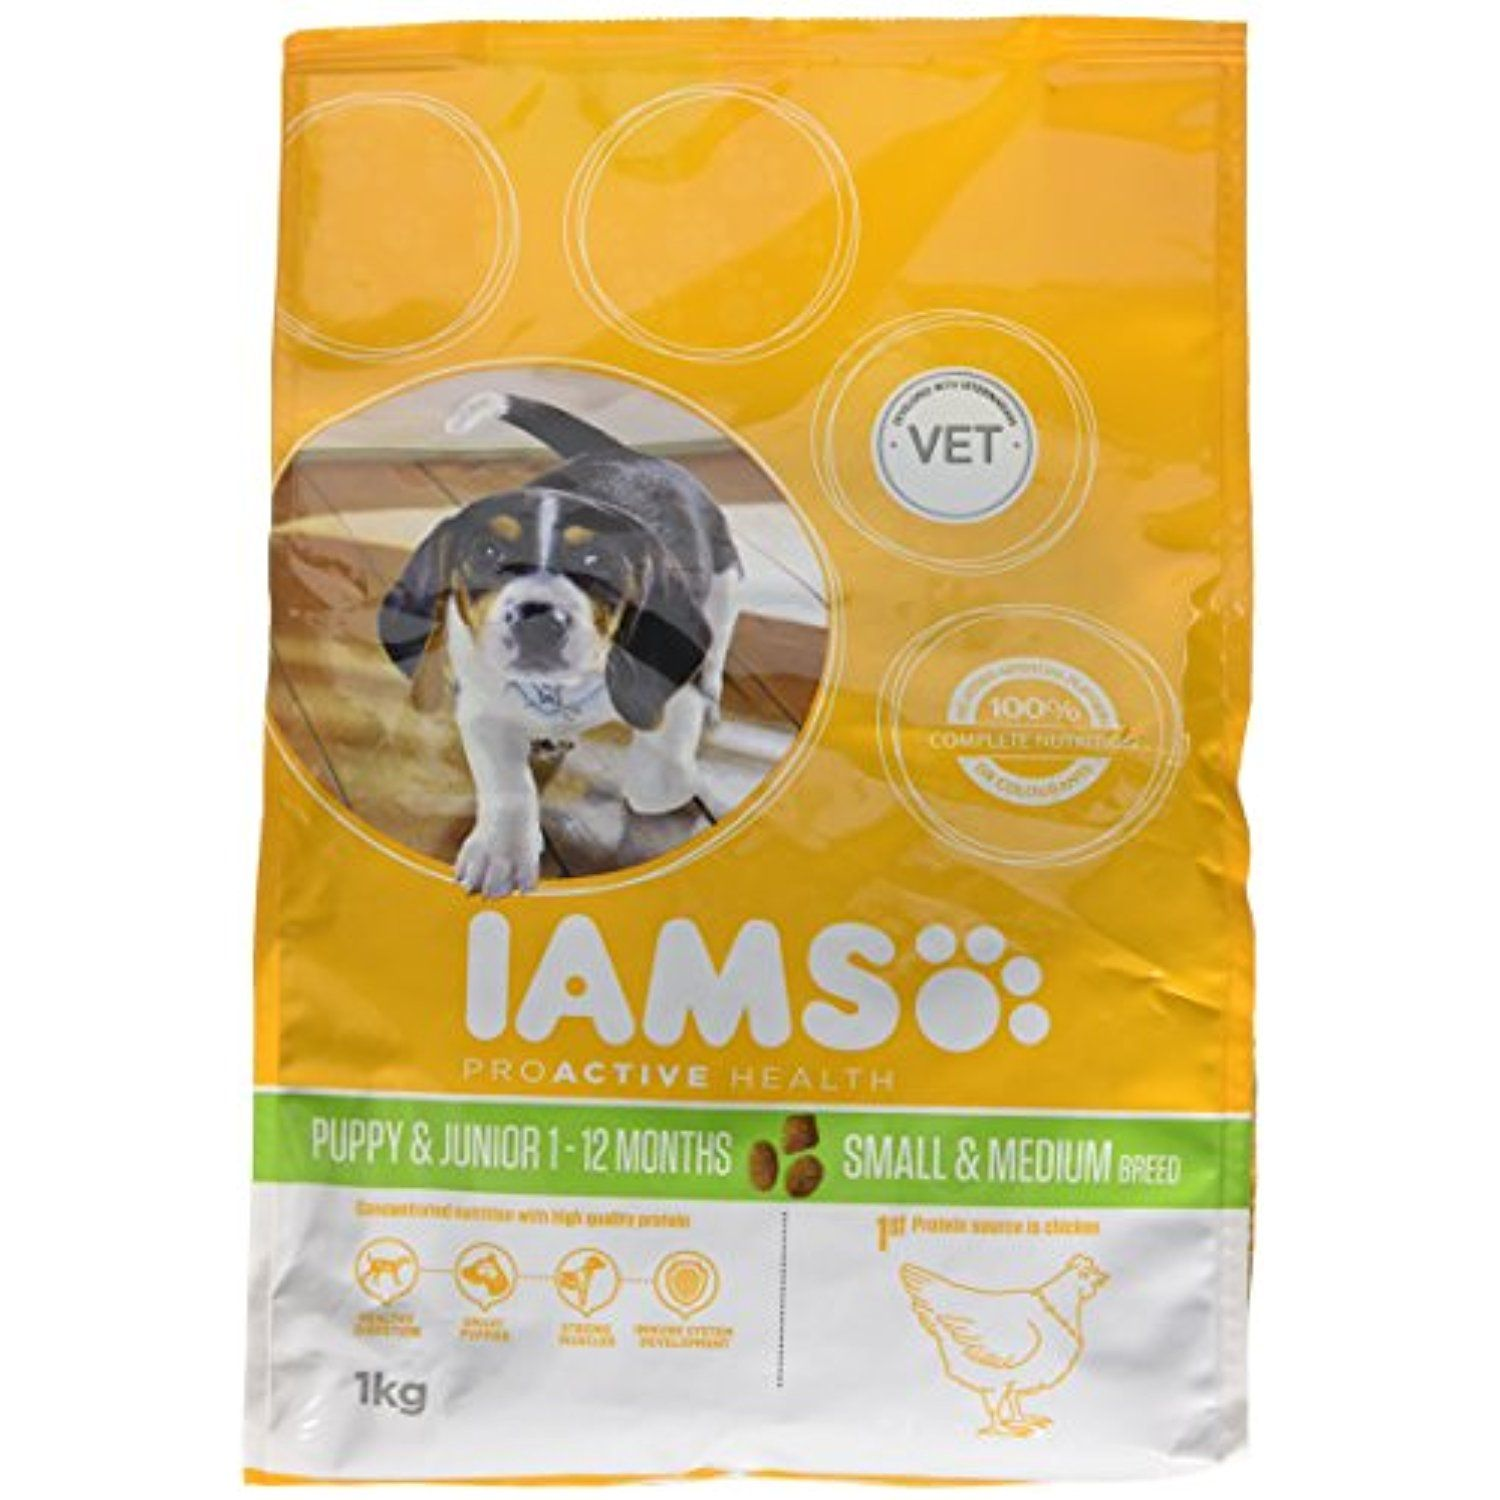 Iams Dry Dog Food Puppy And Junior Small Medium Breed 1 Kg Pack